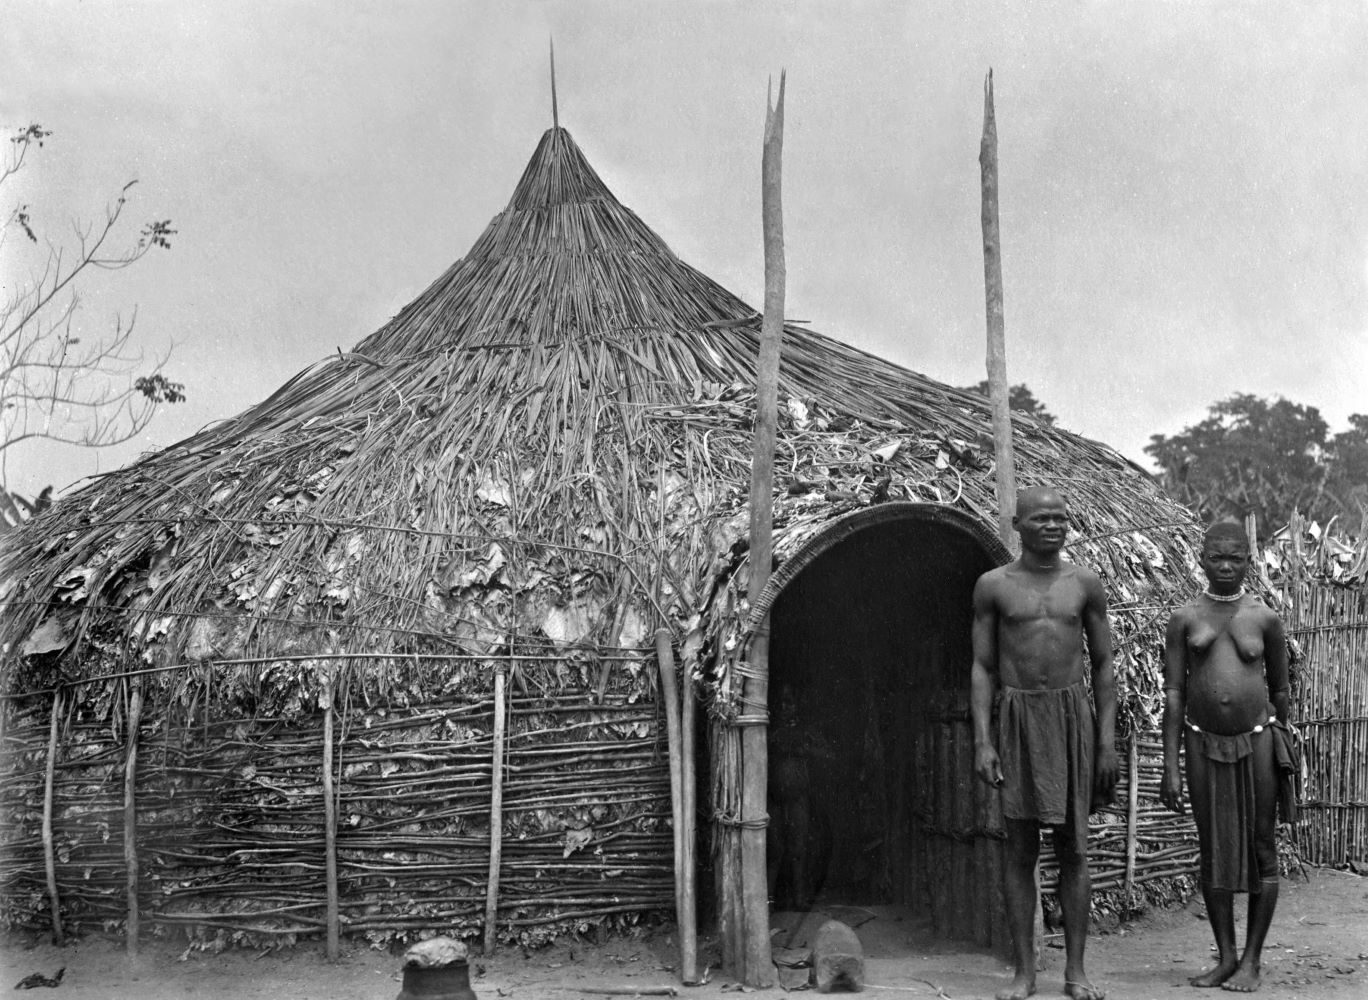 Africa, British East Africa, Kenya, Taveta: natives in front of their hut - undated